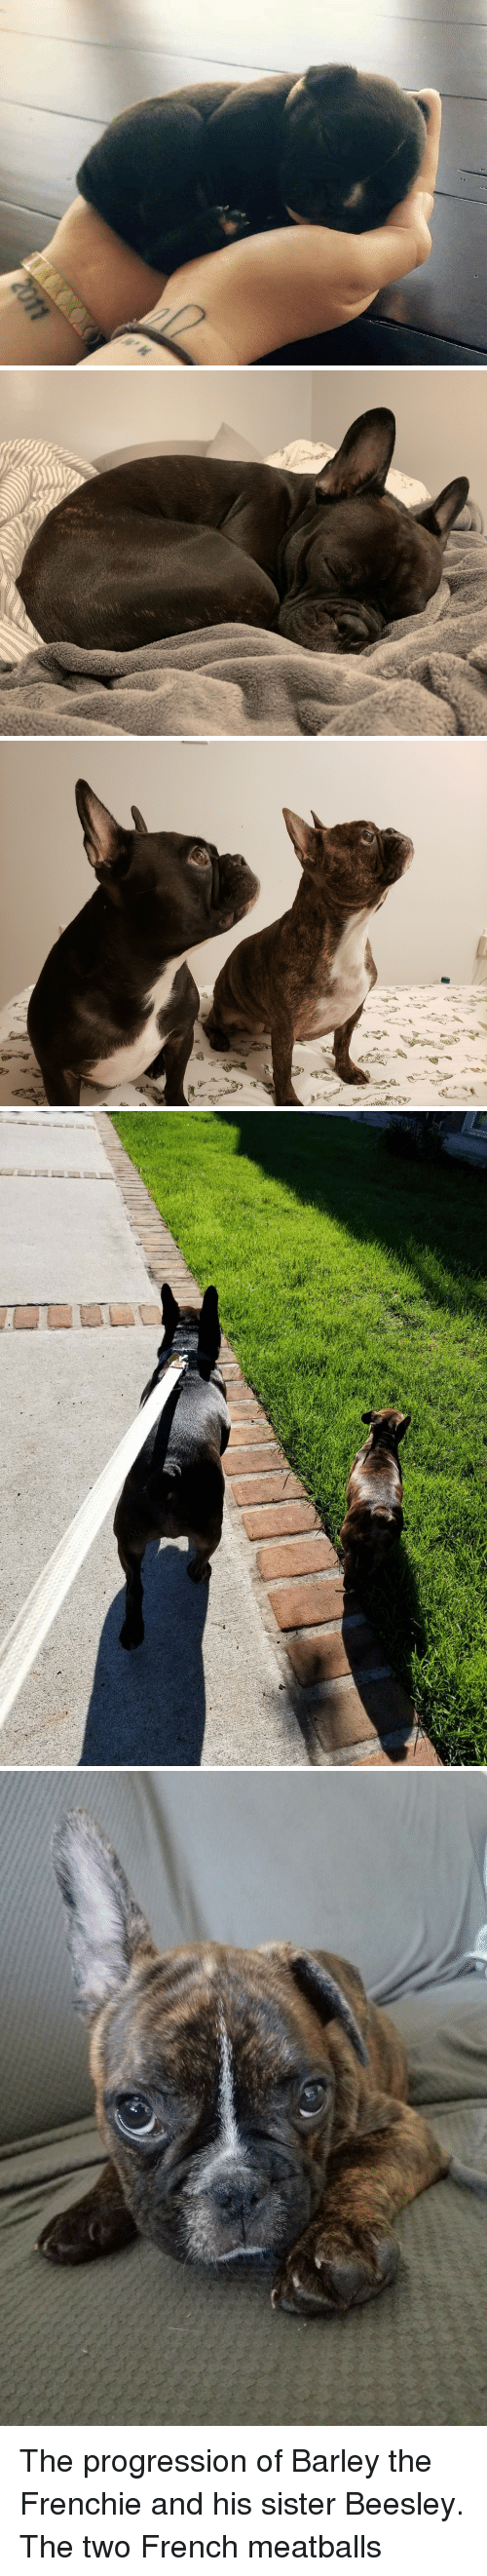 At First Sight: The progression of Barley the Frenchie and his sister Beesley. The two French meatballs